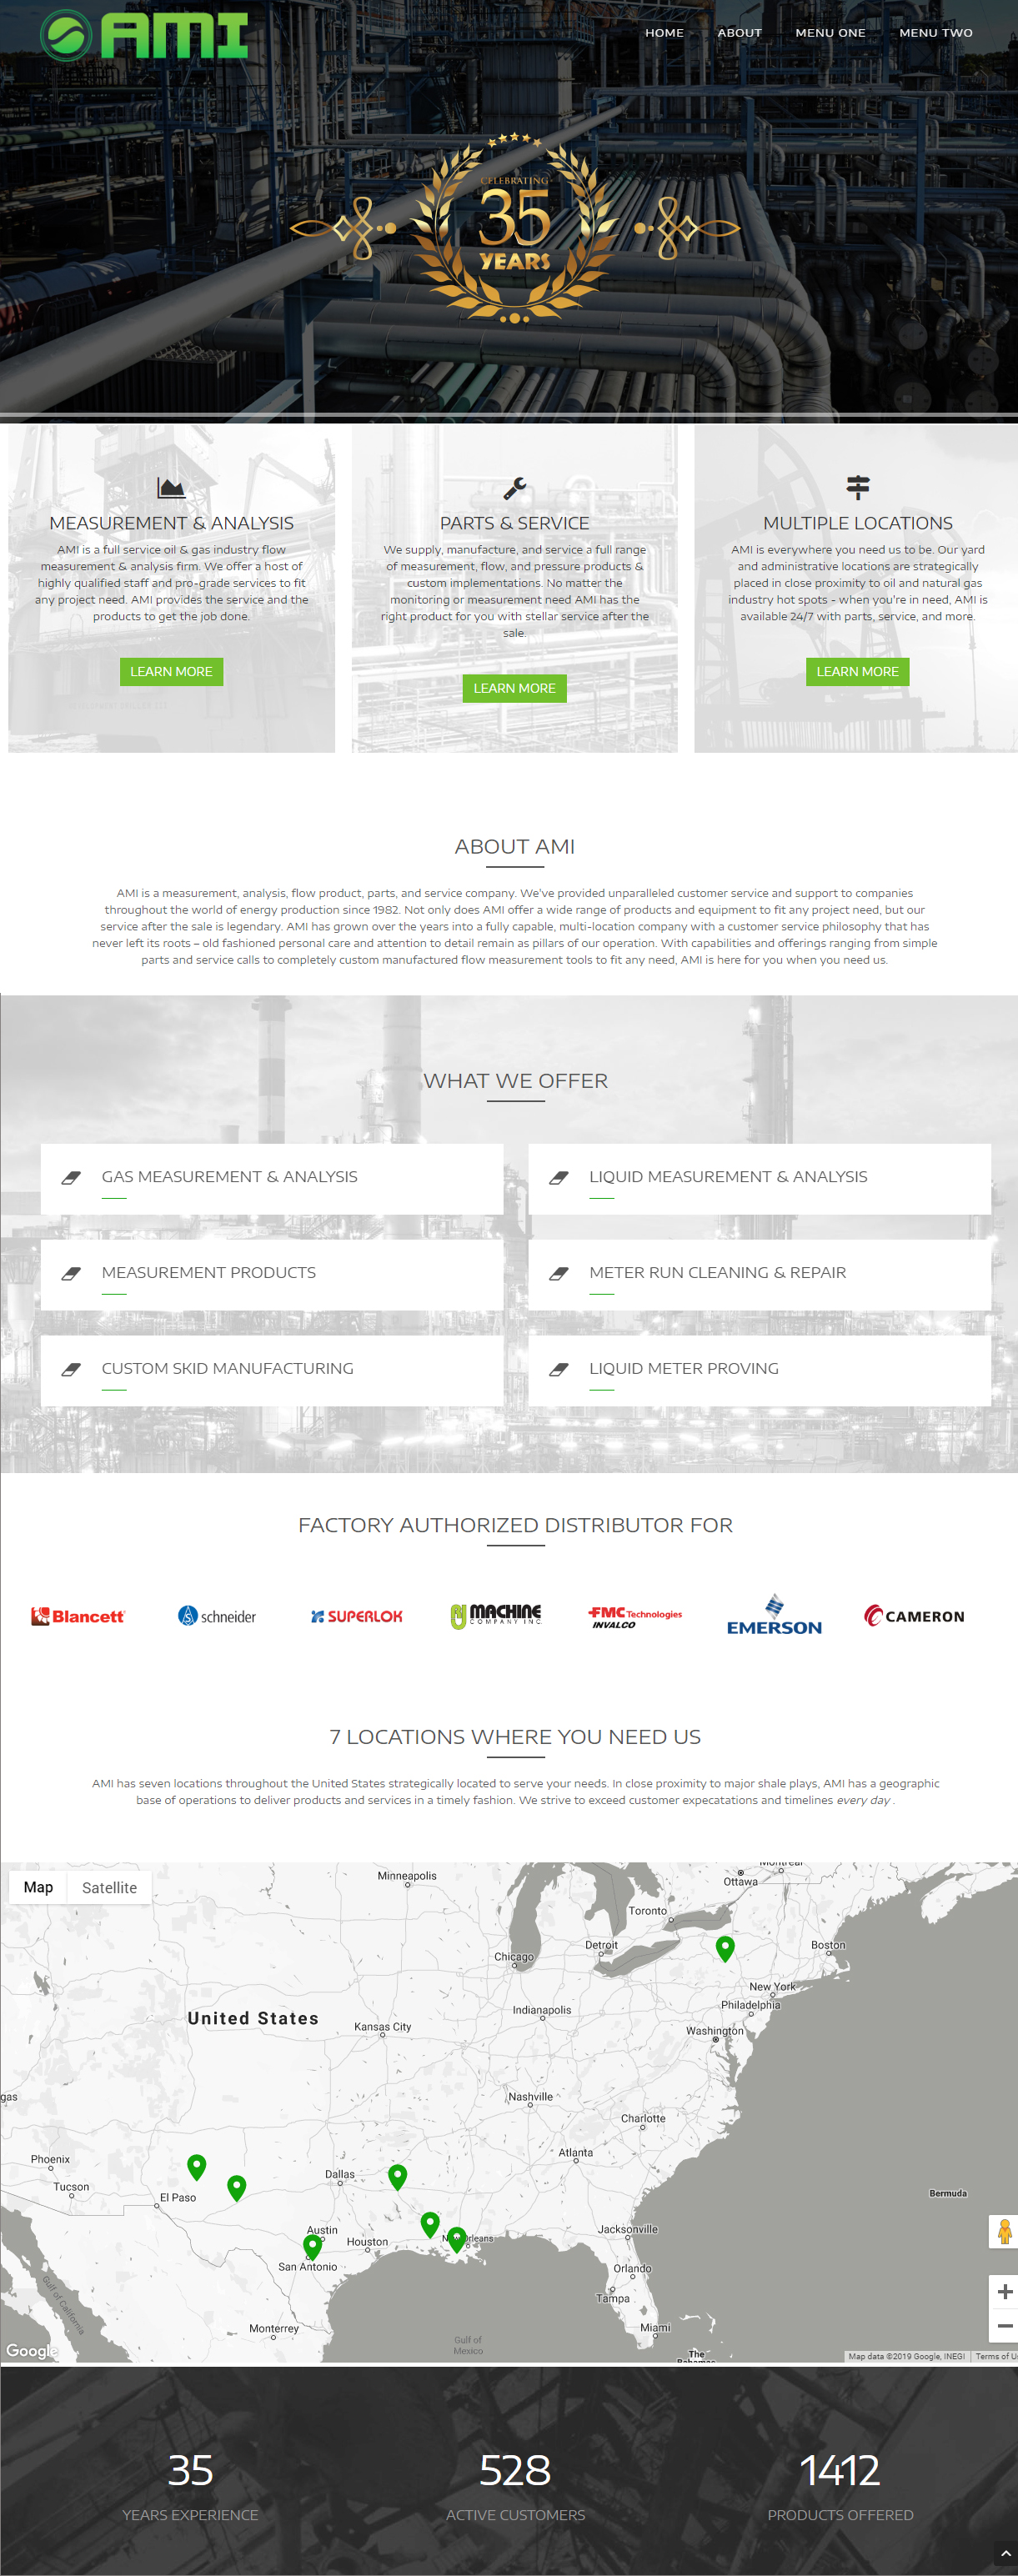 An oil and gas measurement company web design screenshot for a company in Houston TX